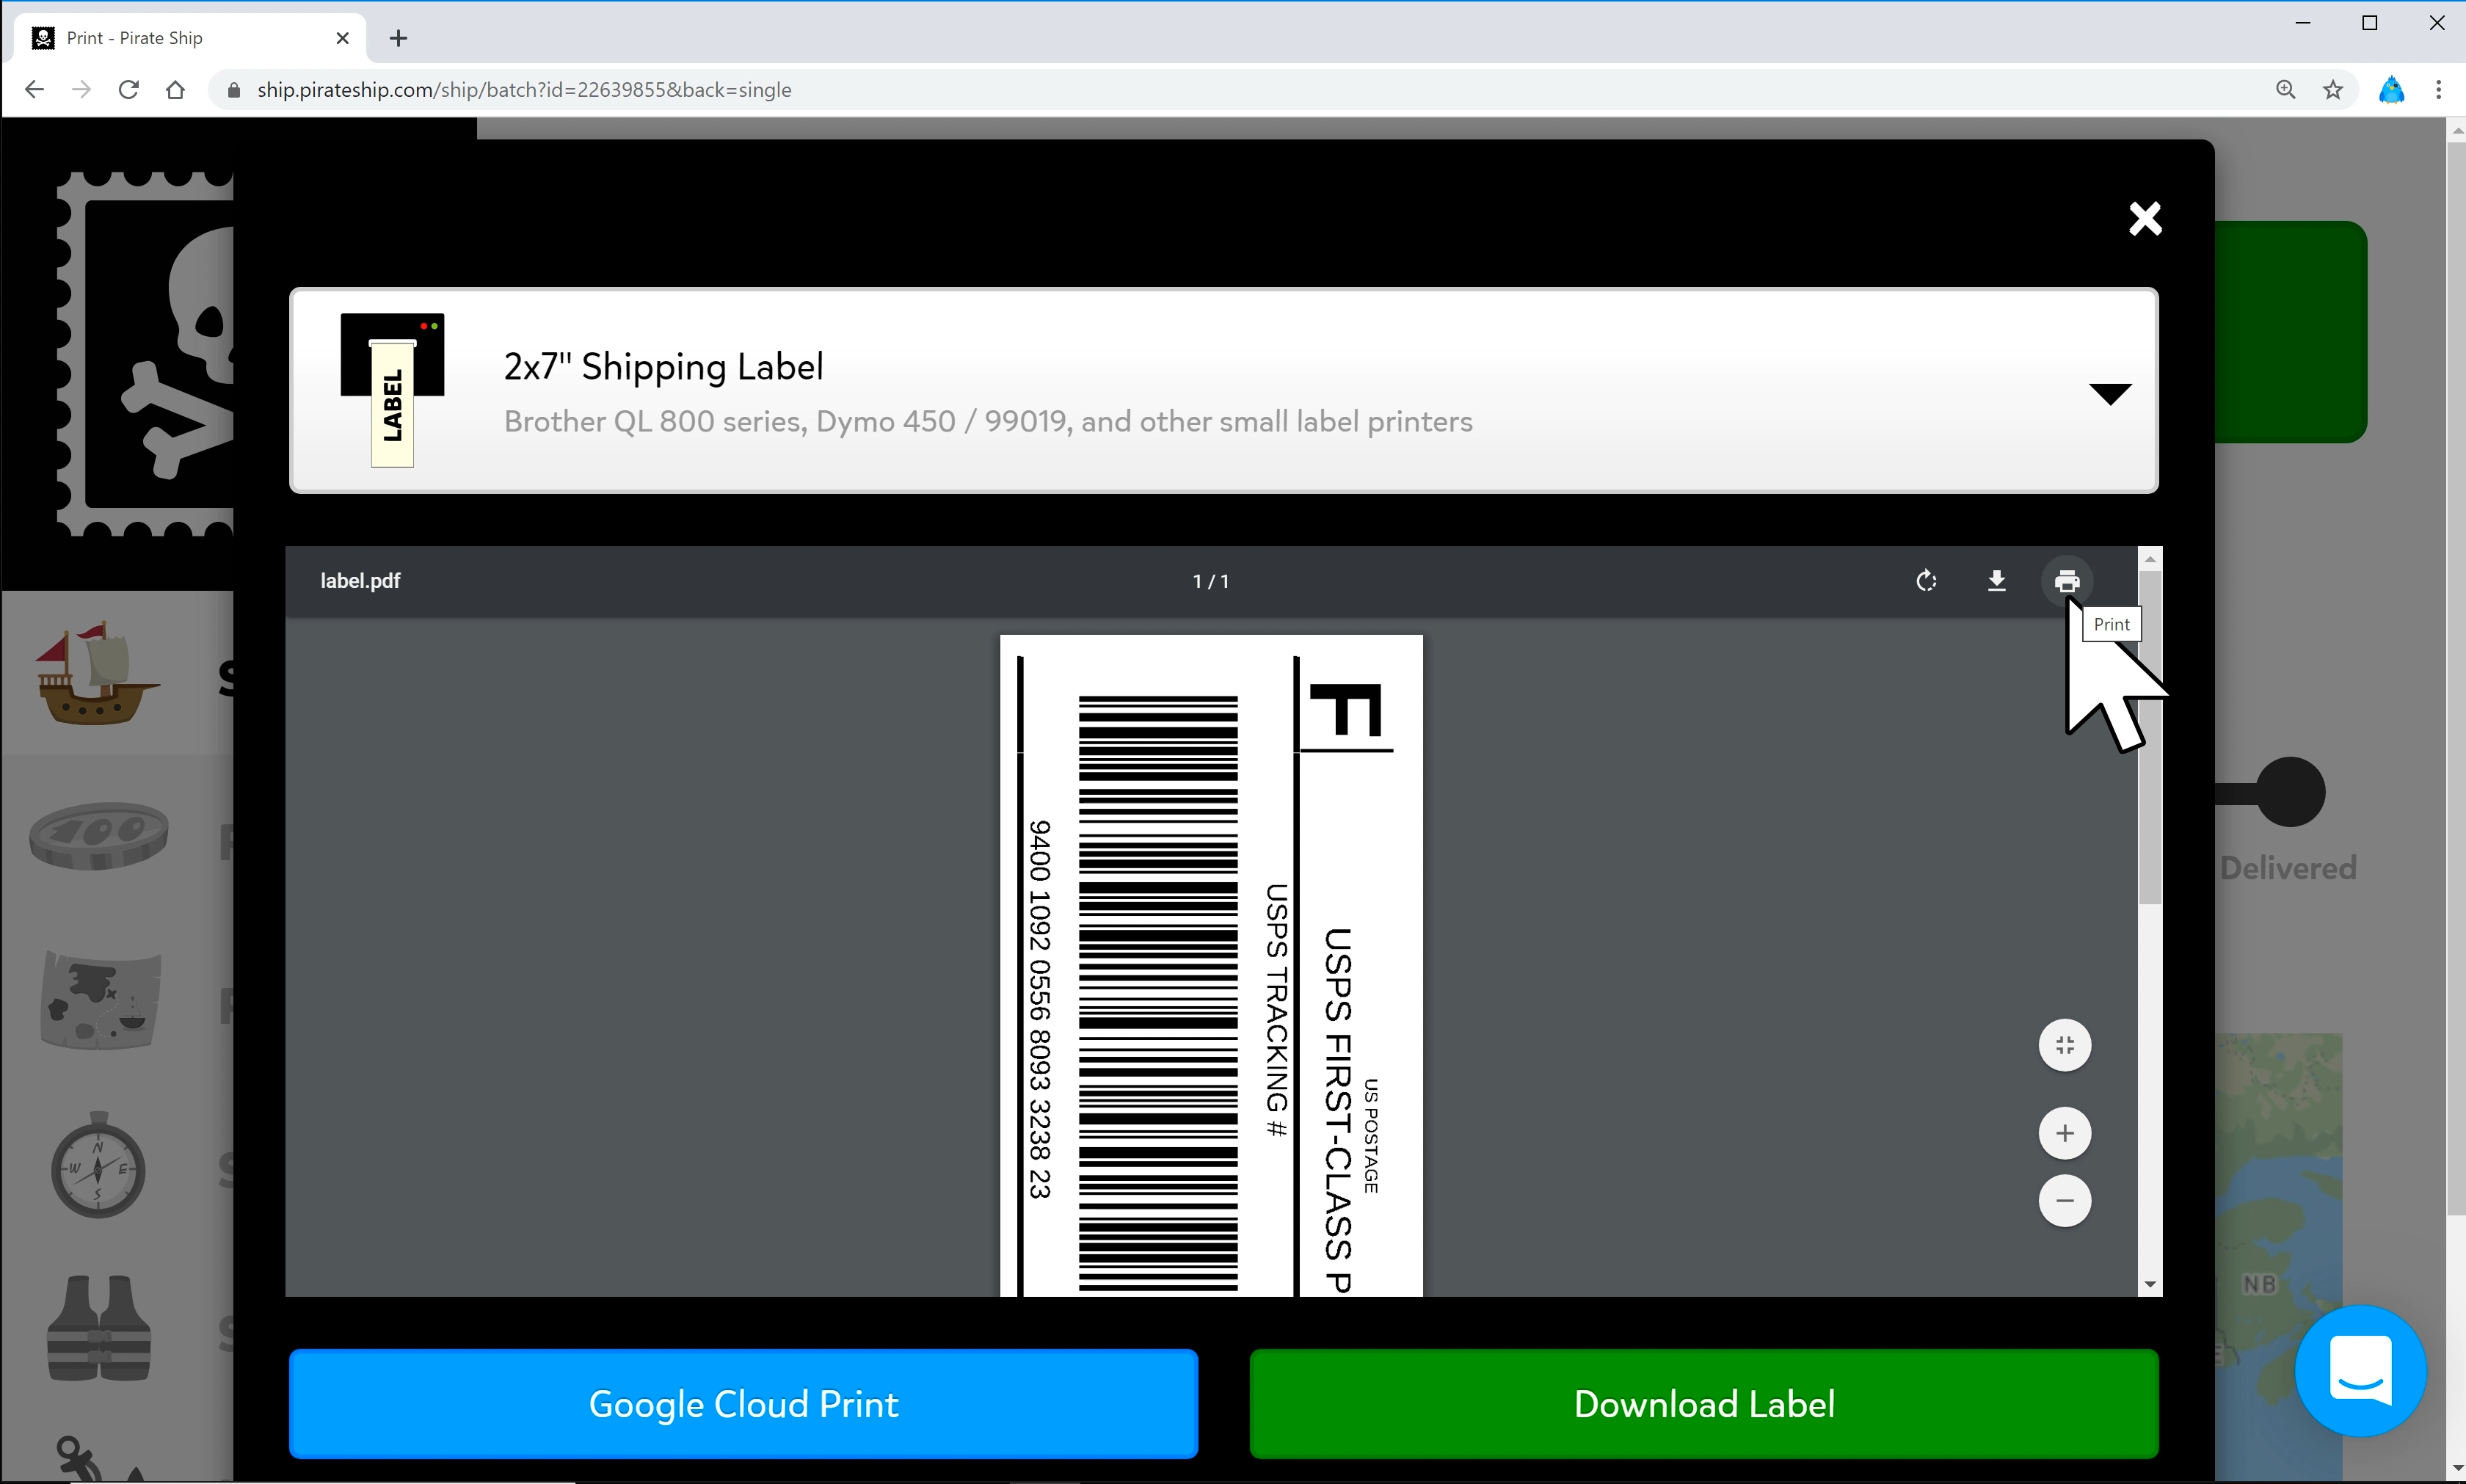 Screenshot of the 'Print Label' dialogue window on Google Chrome, with the mouse hovering over the label and pointing at a printer icon in the top right corner of the label preview.